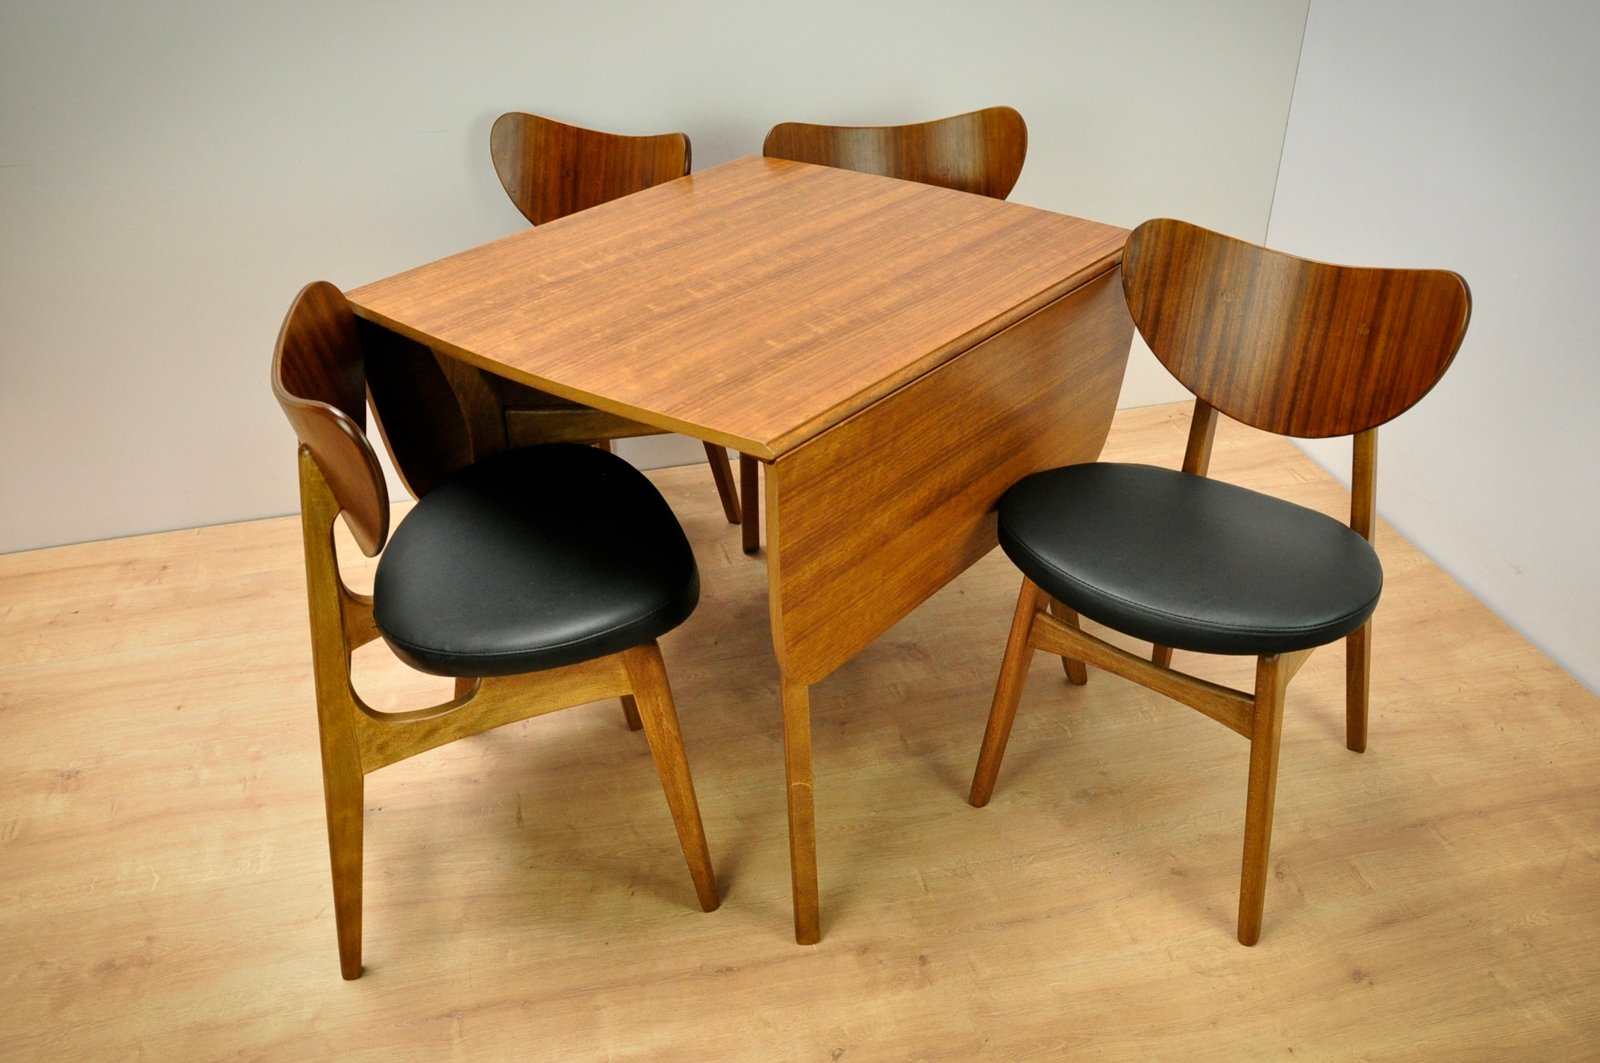 Dining Table And 4 Chairs From G Plan 1960s For Sale At